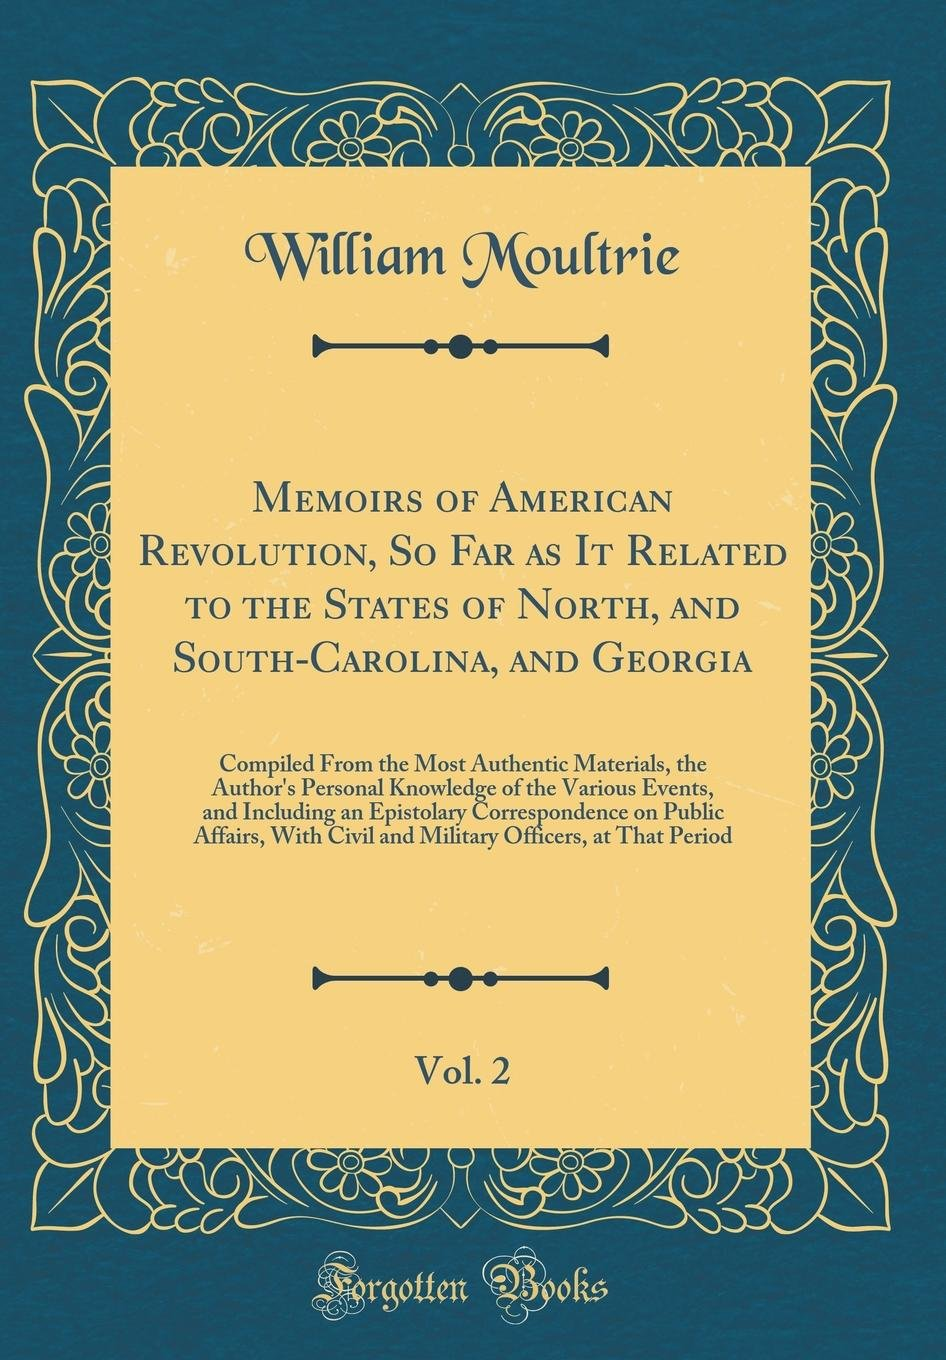 Read Online Memoirs of American Revolution, So Far as It Related to the States of North, and South-Carolina, and Georgia, Vol. 2: Compiled from the Most Authentic ... and Including an Epistolary Correspond pdf